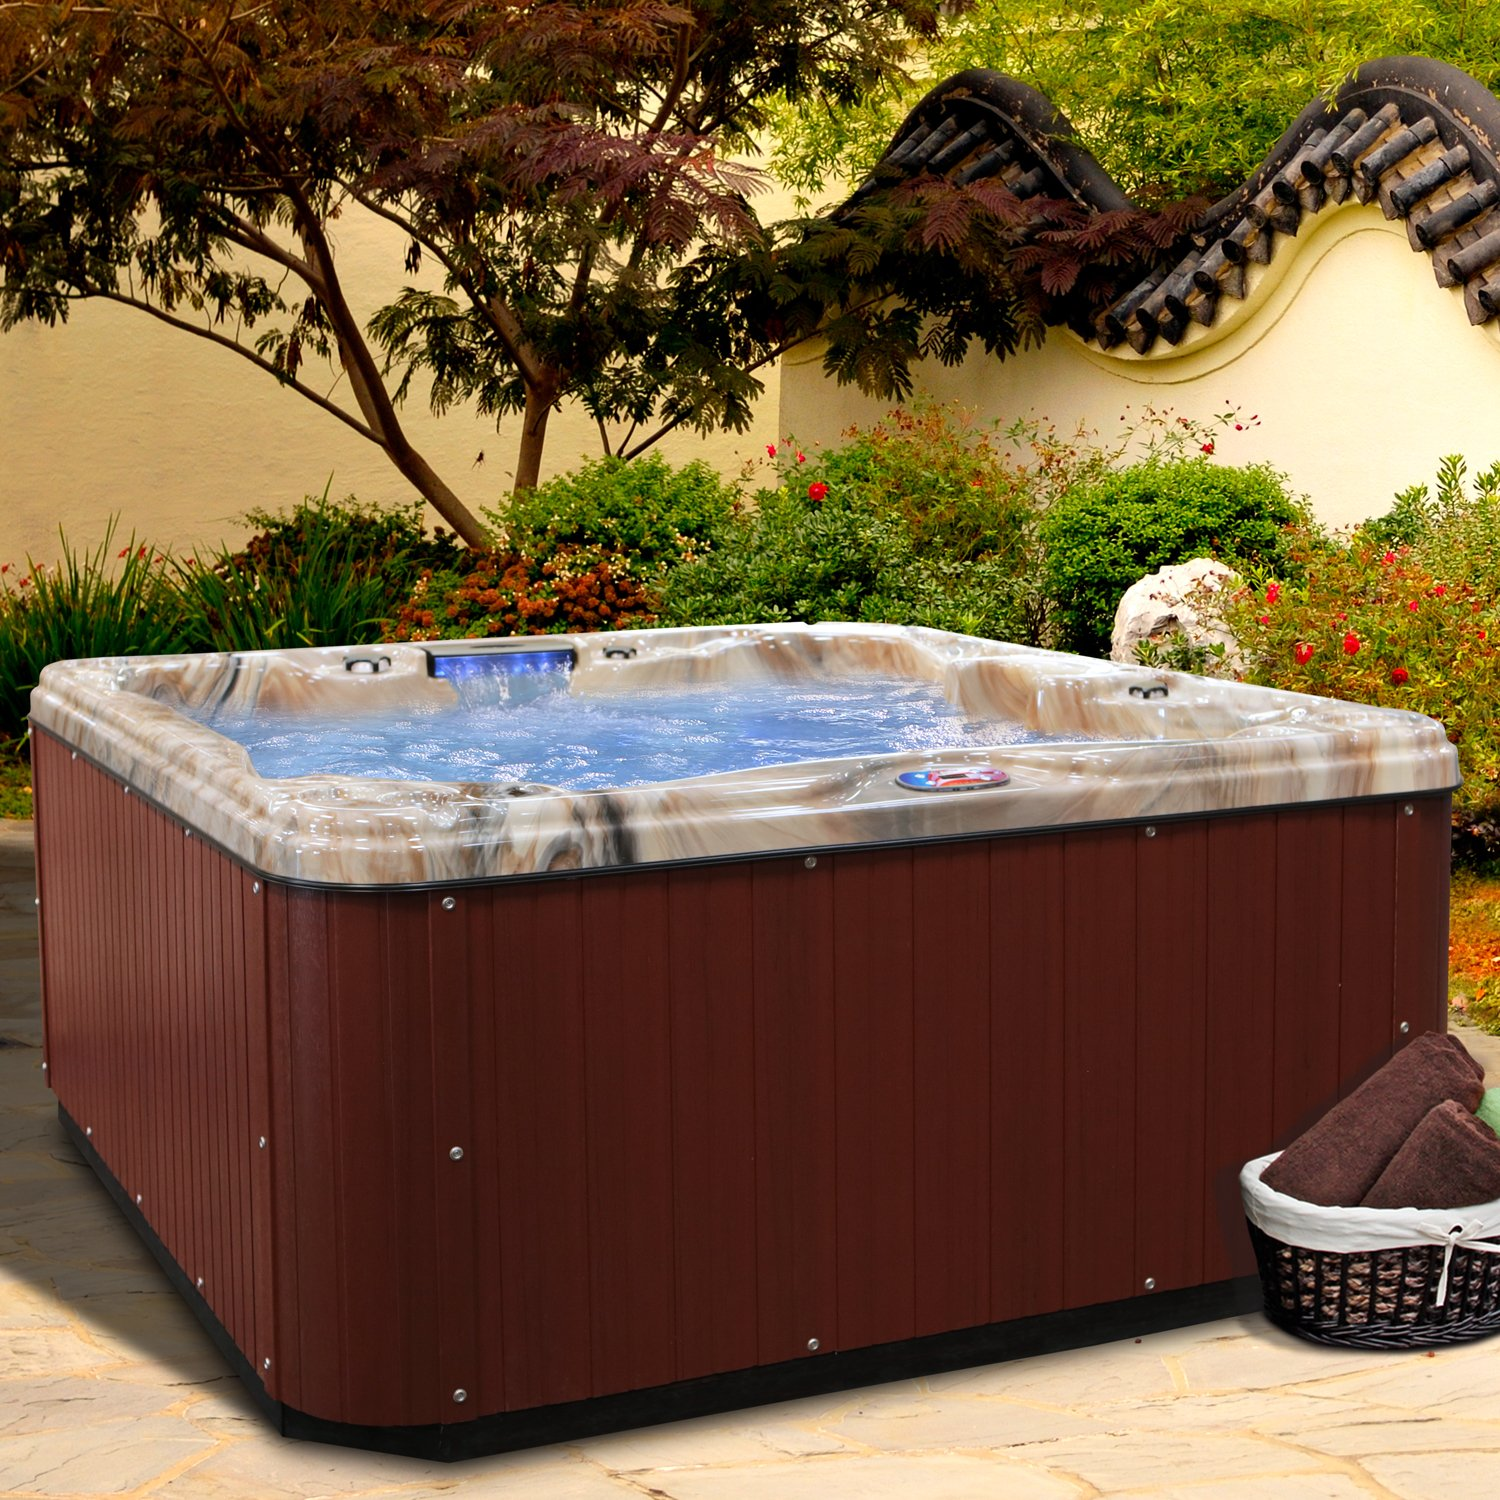 American Spas AM-630LM 5-Person 30-Jet Lounger Spa with Backlit LED Waterfall